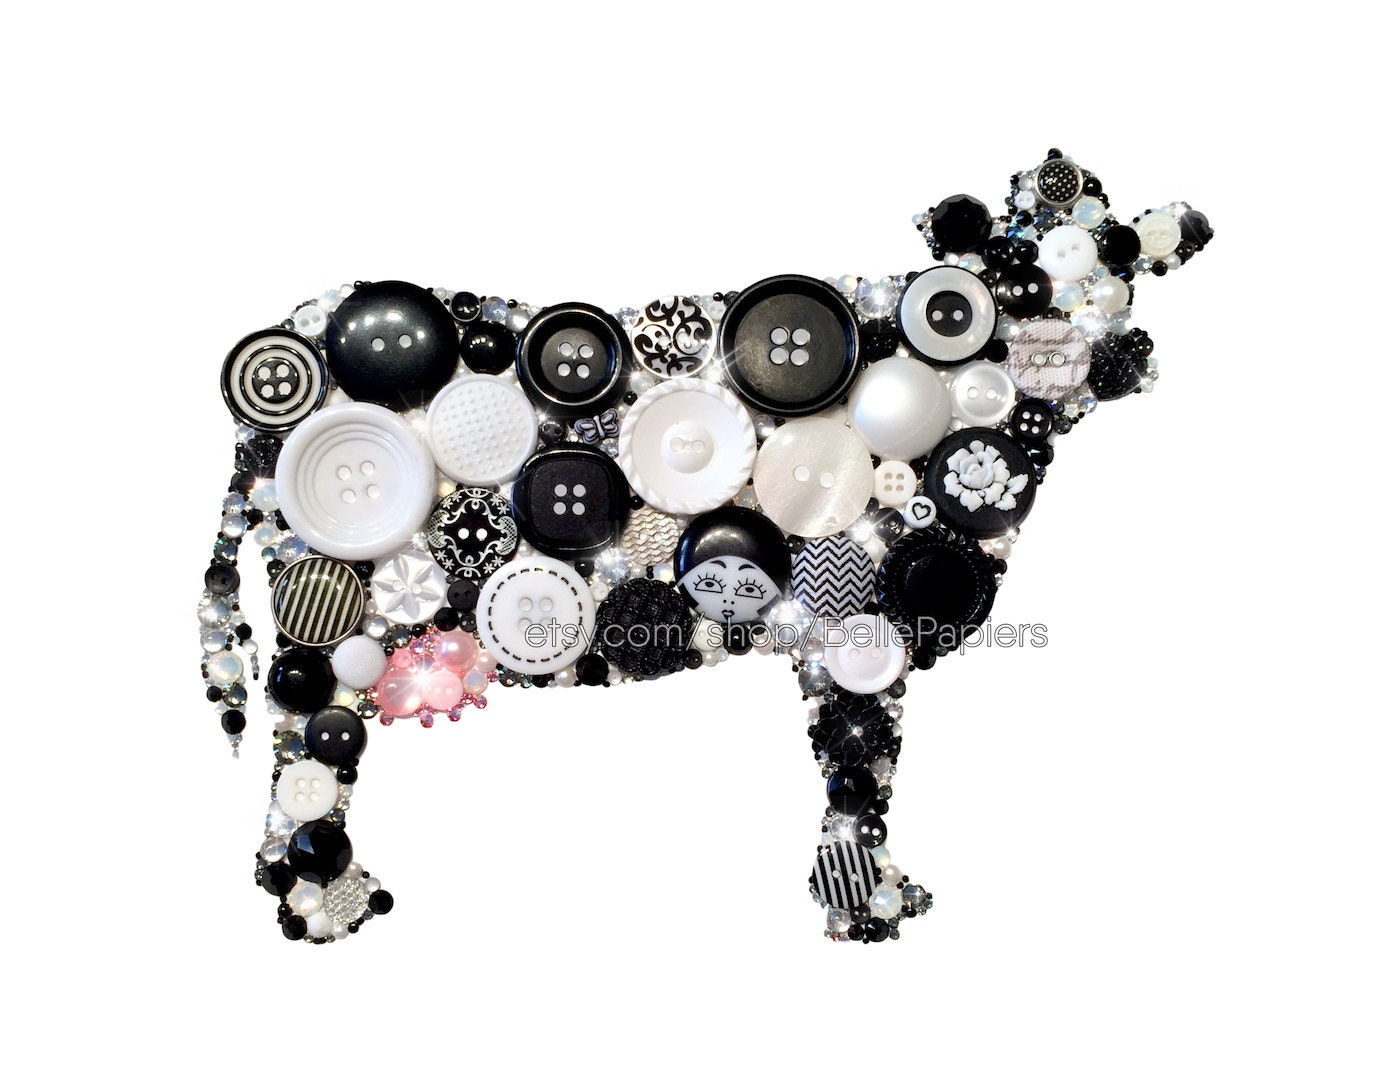 Black Cow Wall Decor : Cow kitchen gallery wall decoration farmhouse decor button art